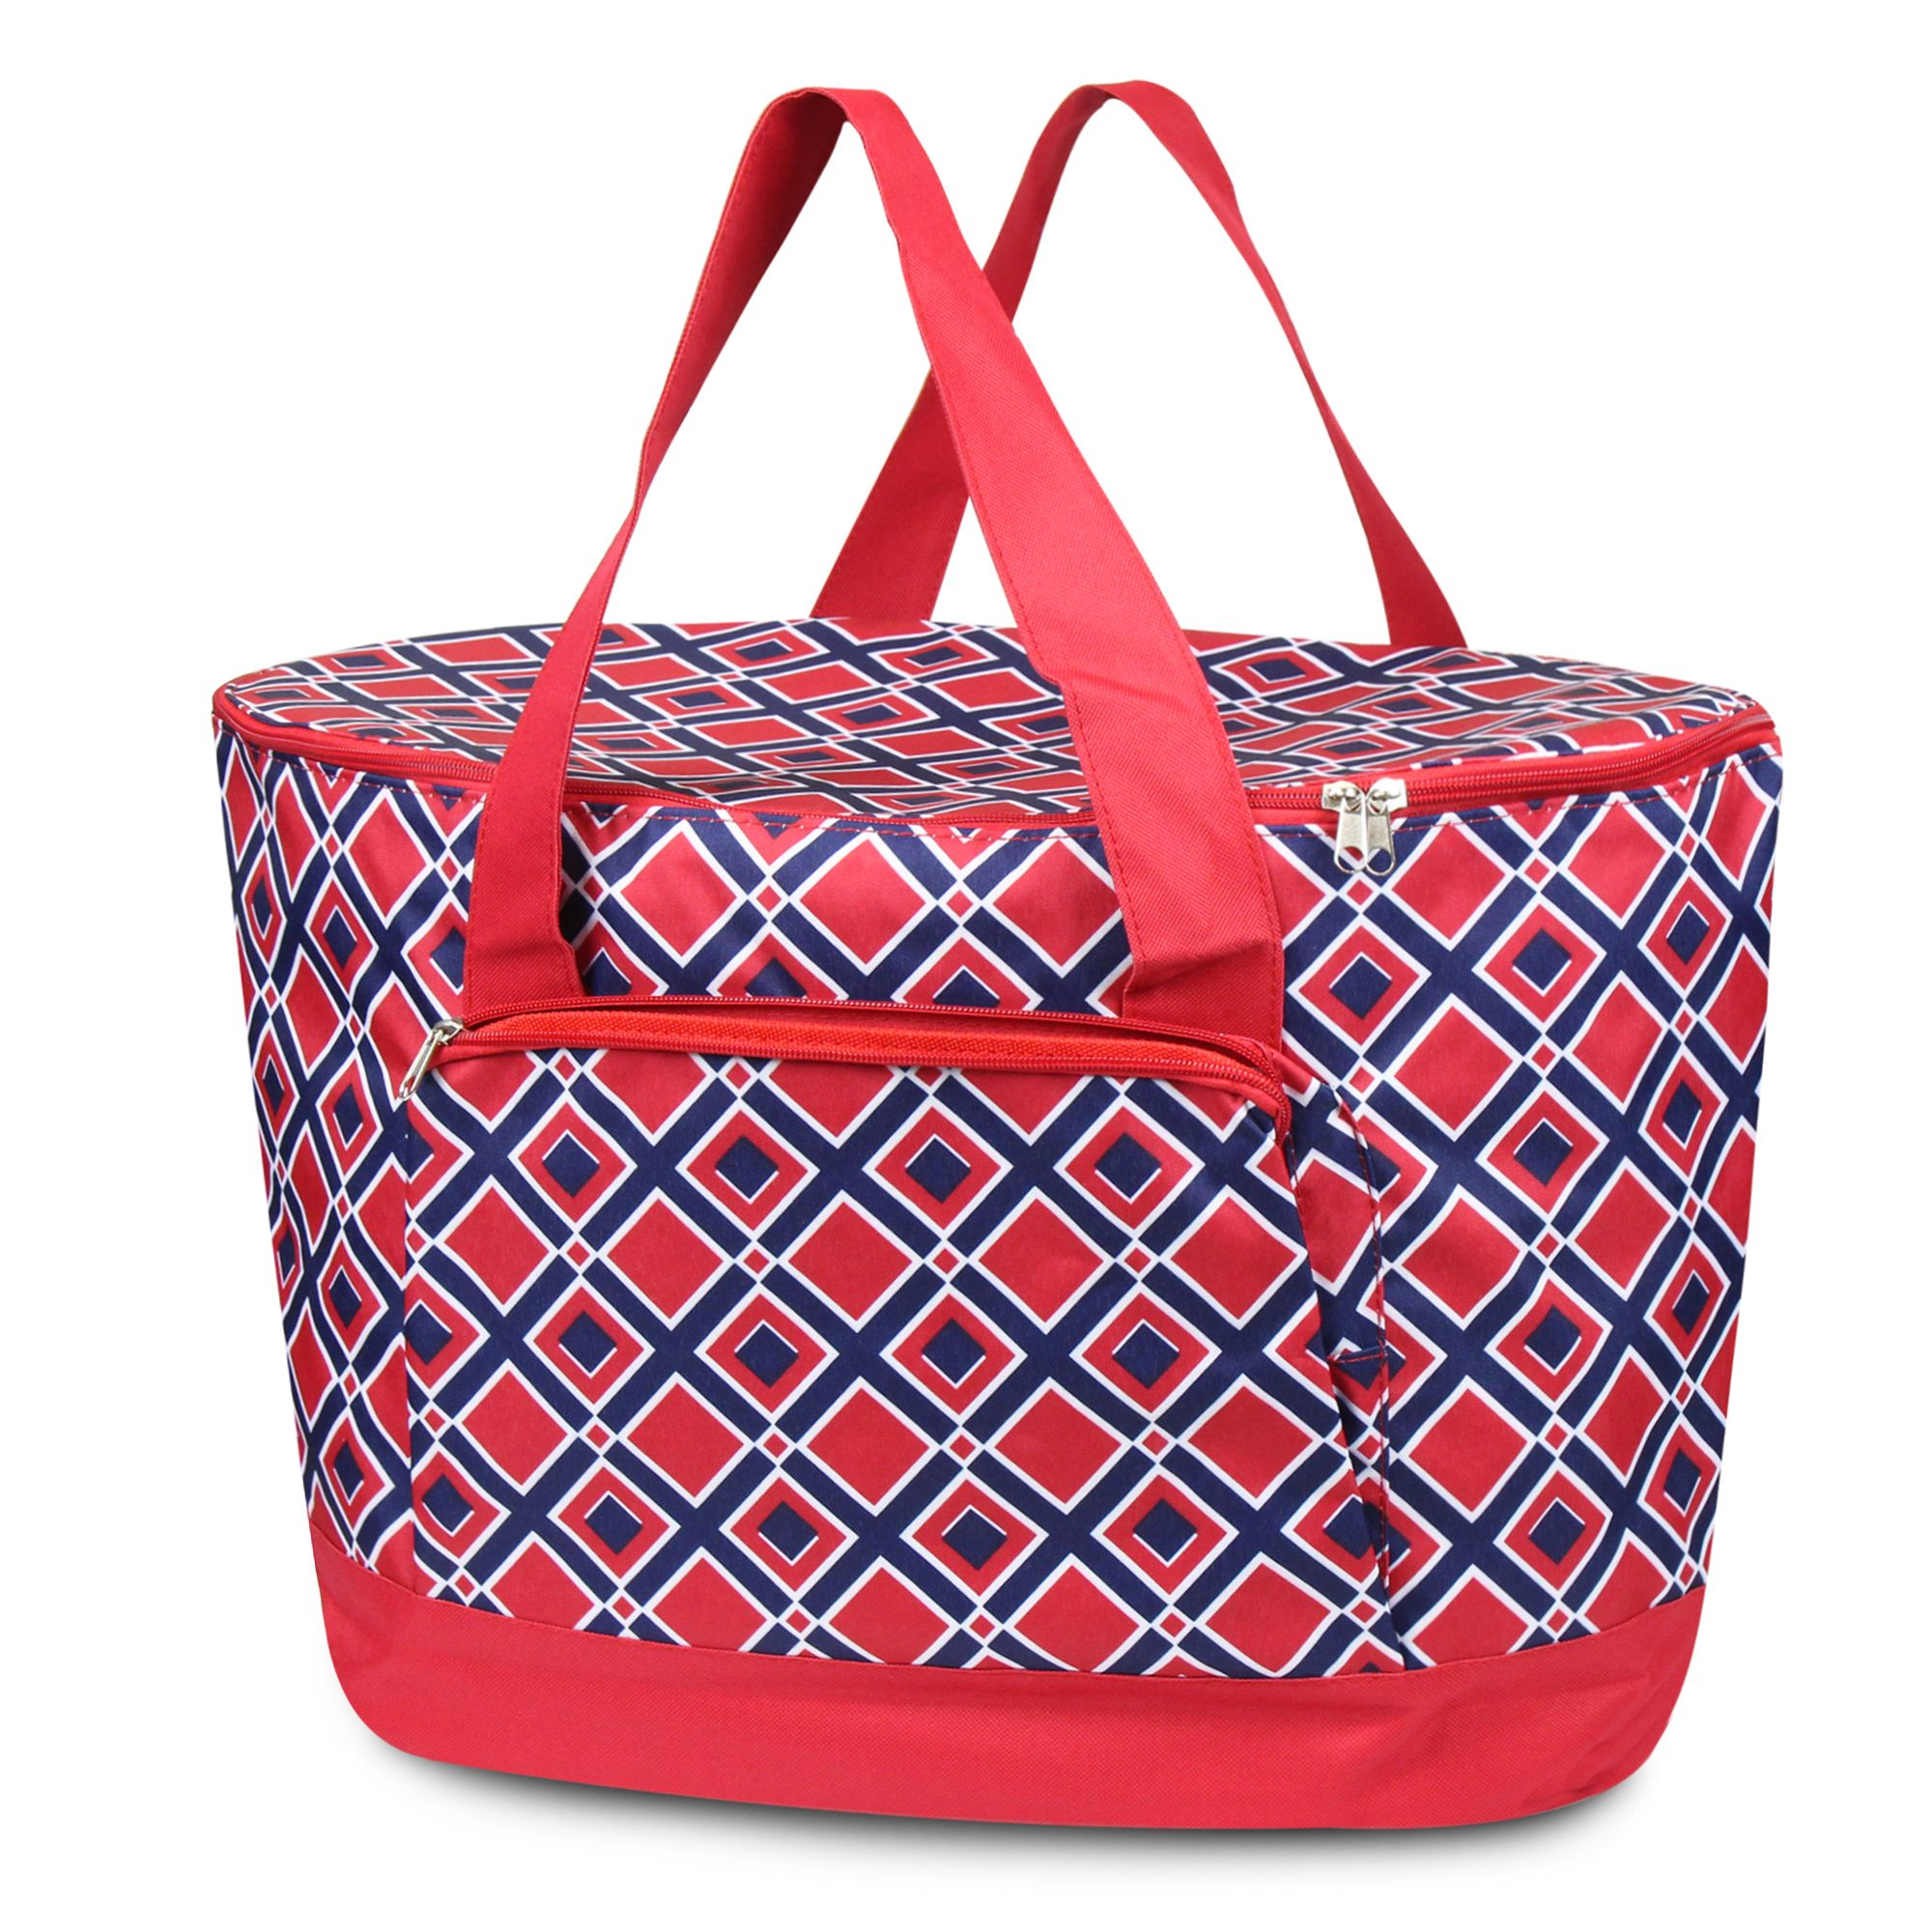 Zodaca Fashionable Large Insulated Cooler Tote Carry Box Food Storage Bag for Camping Beach Travel